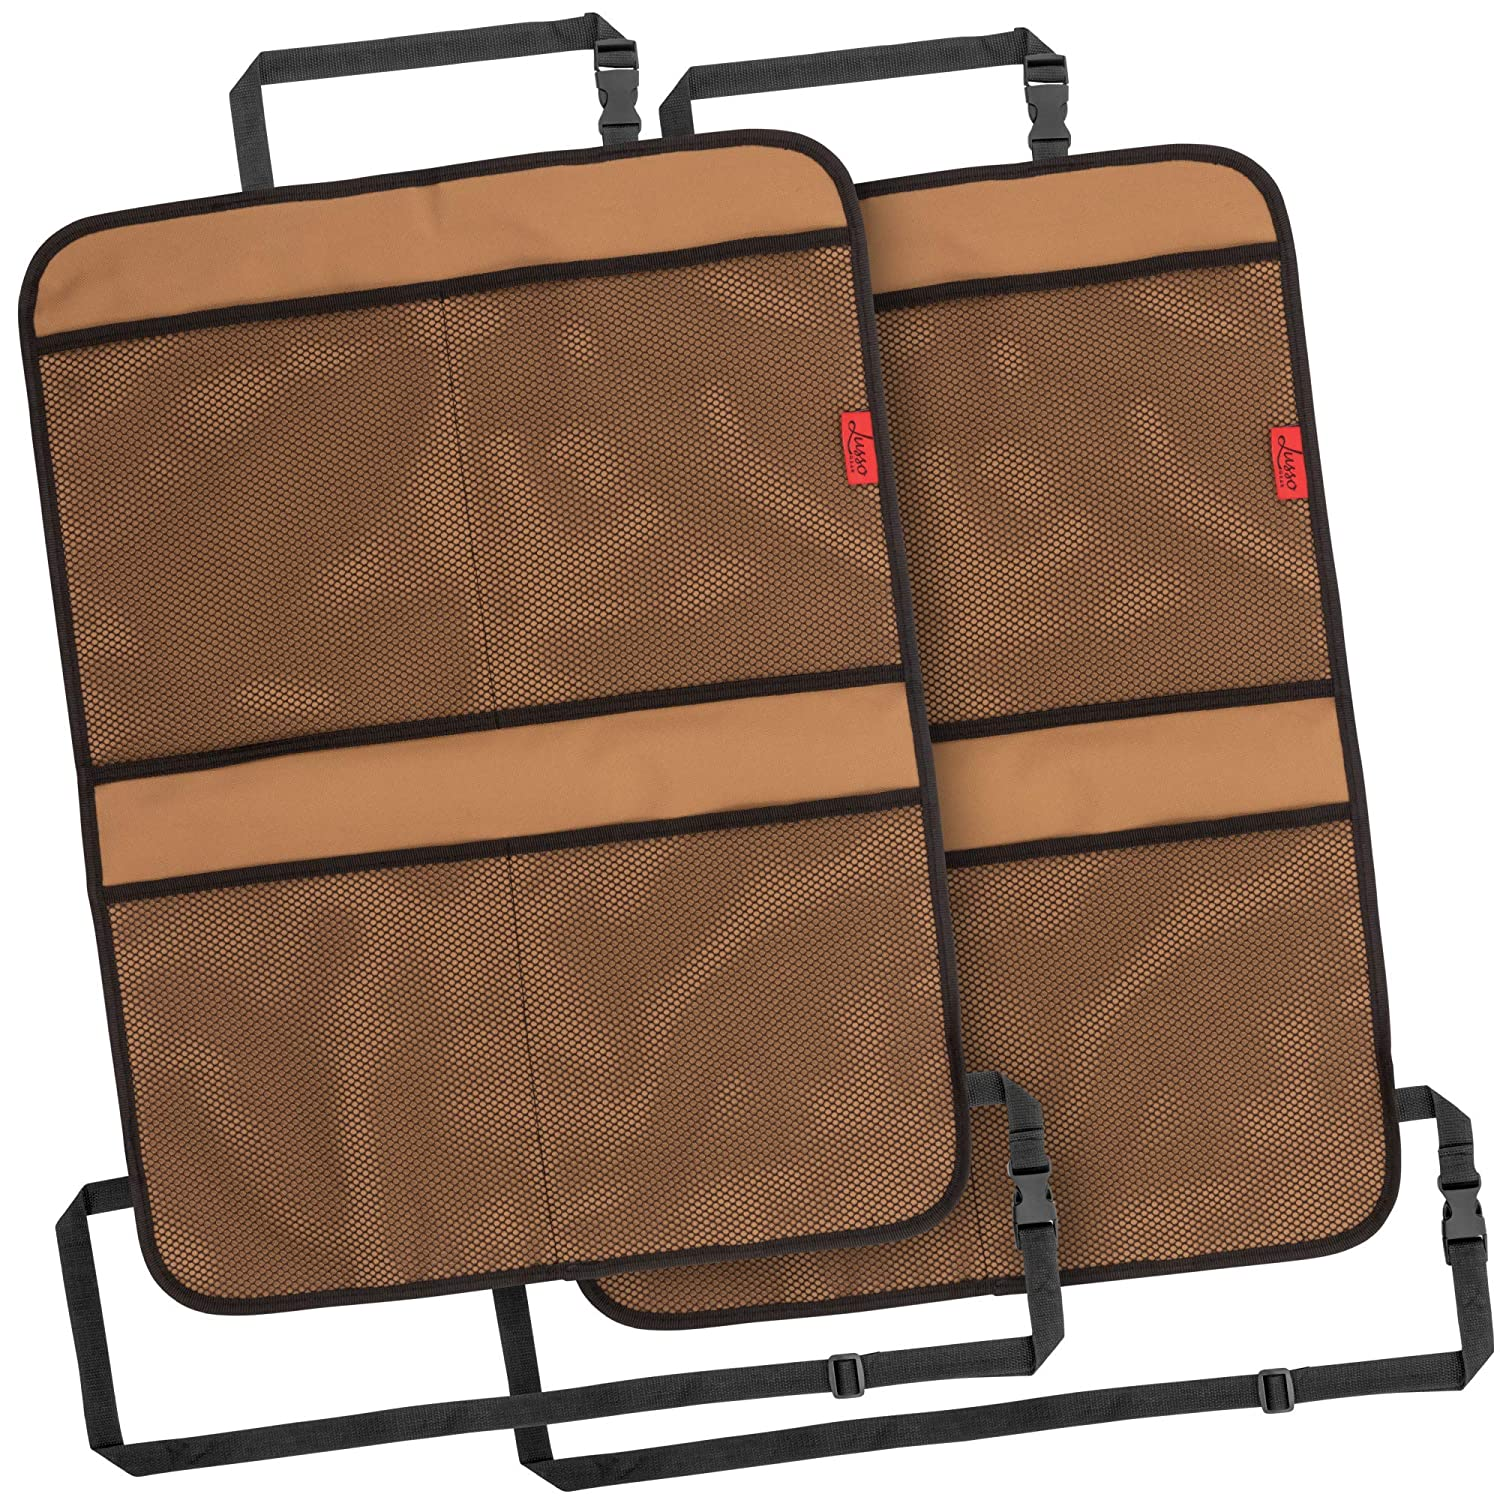 Reinforced Corners to Prevent Sag and 4 Mesh Pockets for Large Storage Premium Waterproof Fabric Kick Mat Car Seat Back Protectors with Odor Free